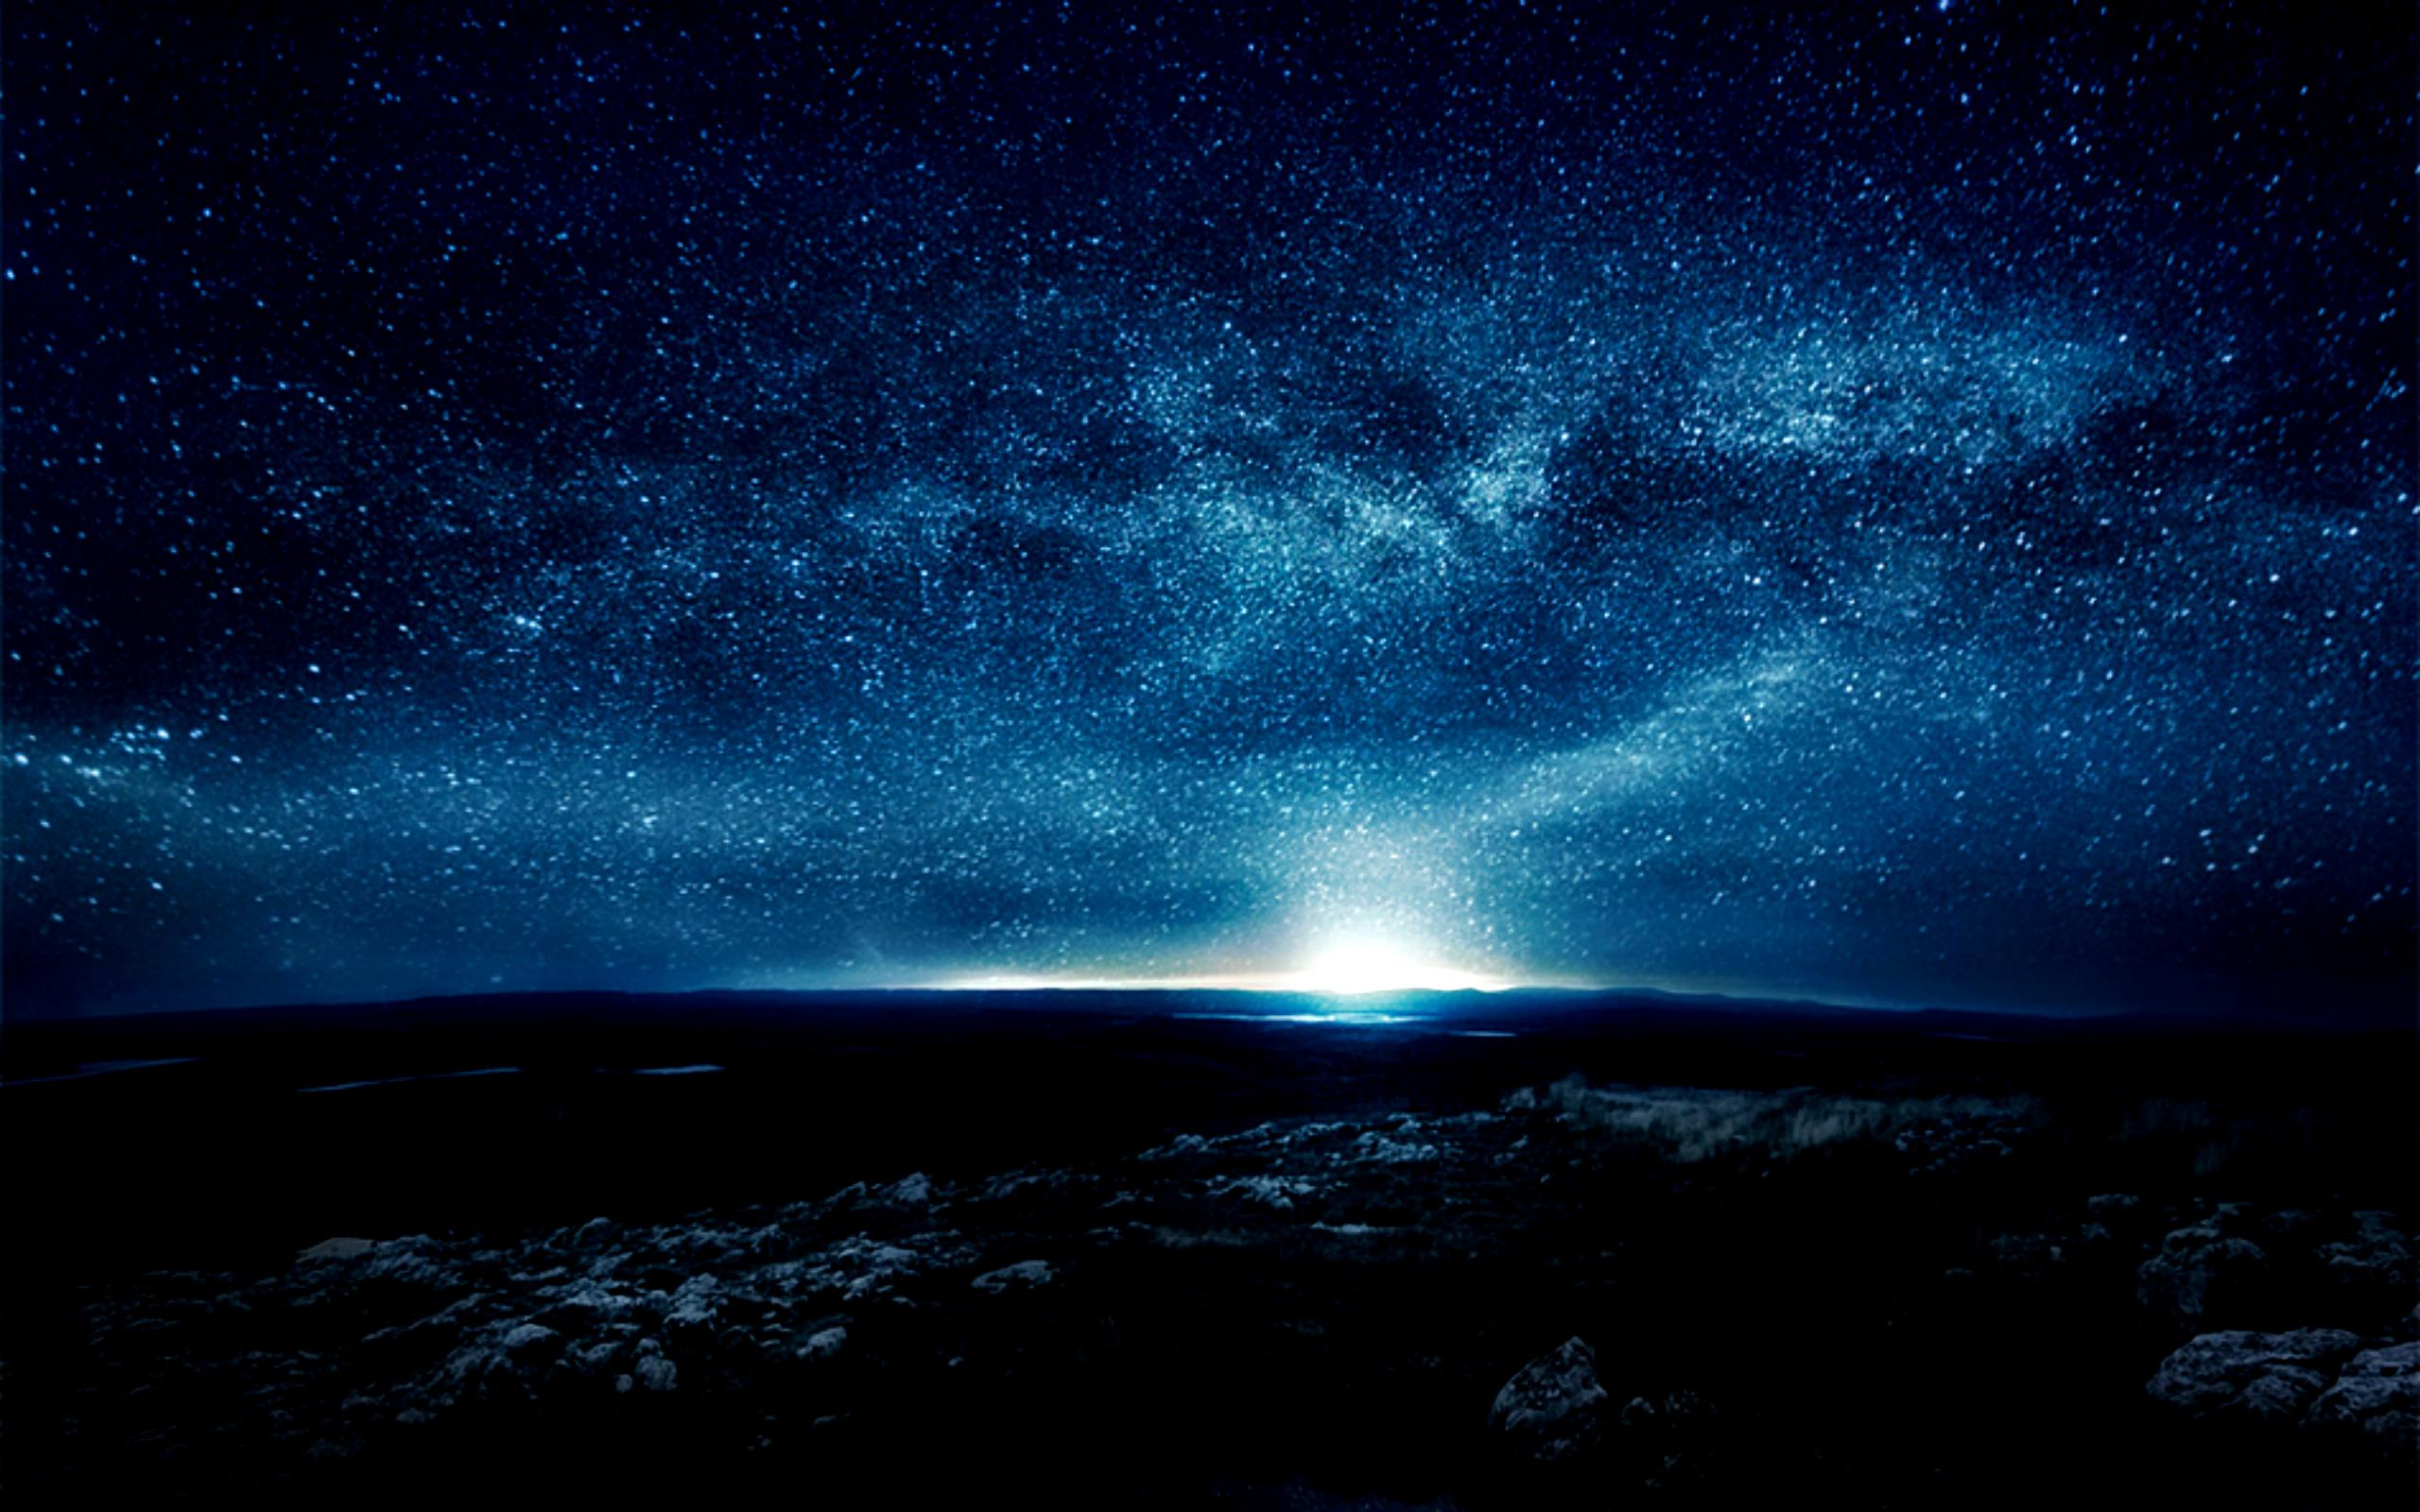 Starry Night Sky HD Wallpaper